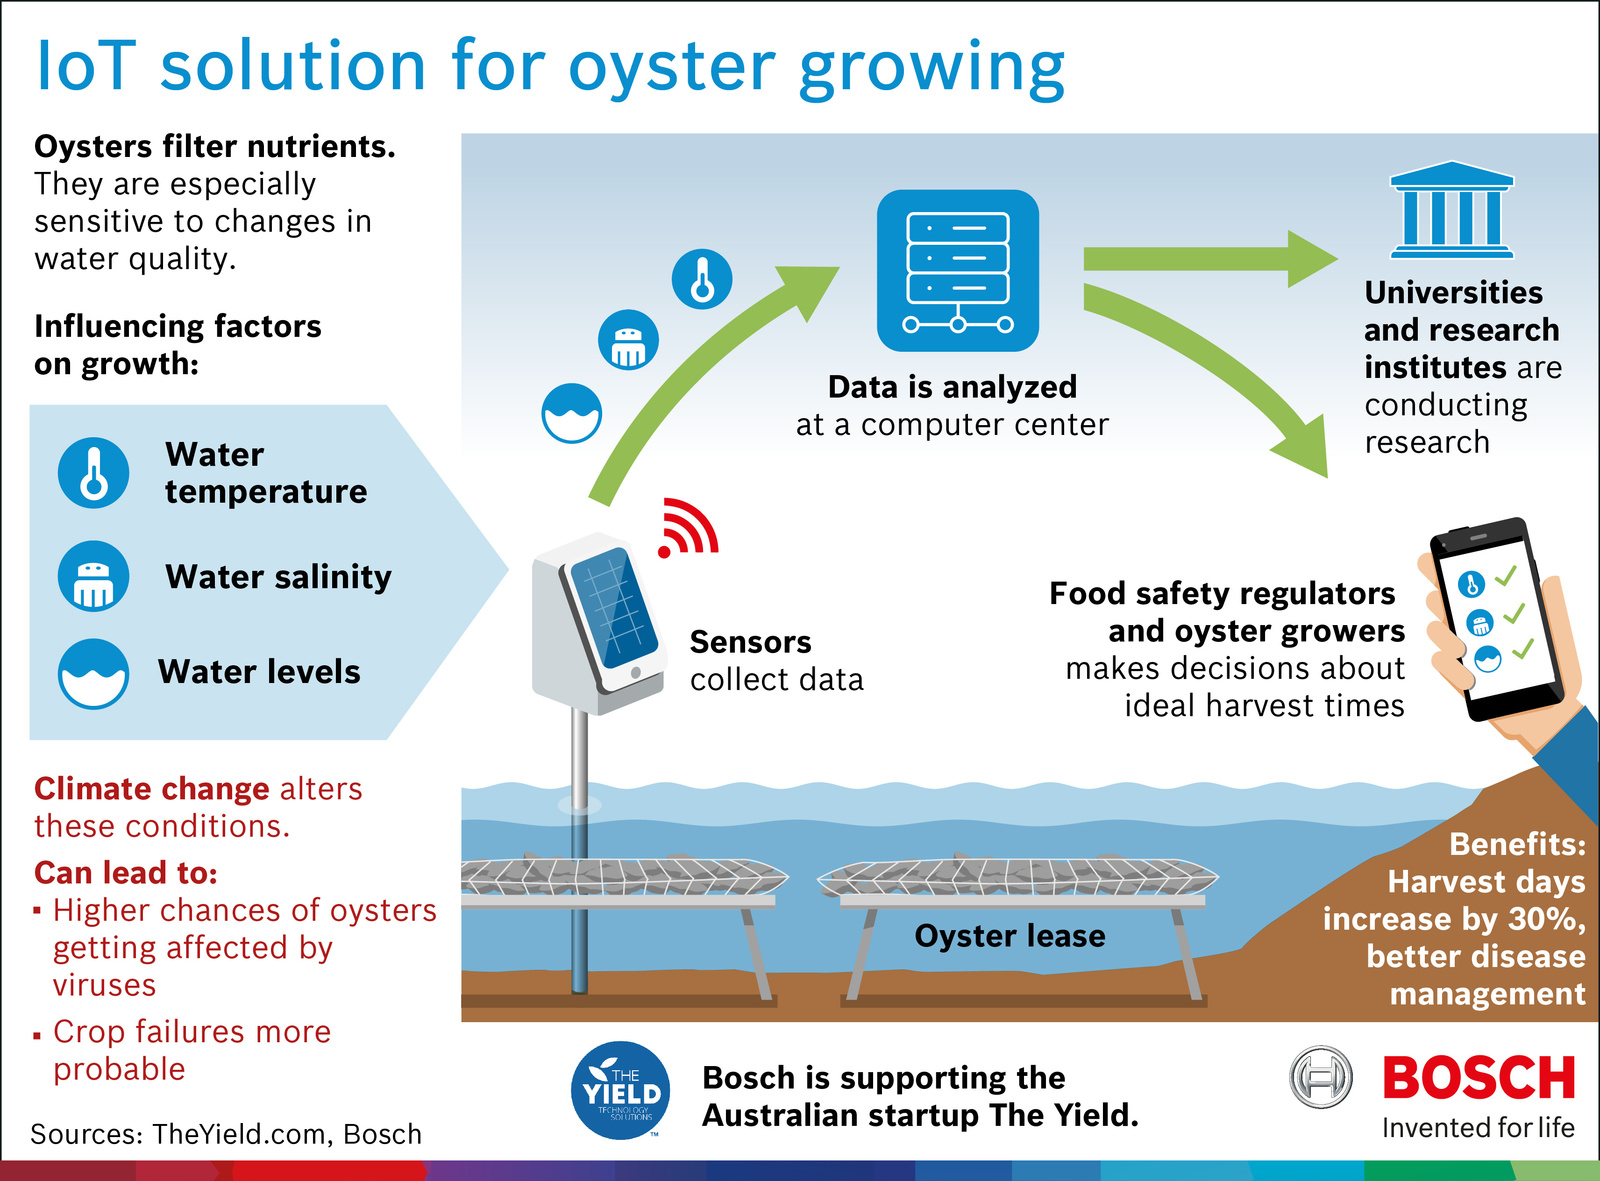 Internet for aquaculture: how sensors are saving the harvest Solution of 'The Yield', an Australian startup supported by Bosch